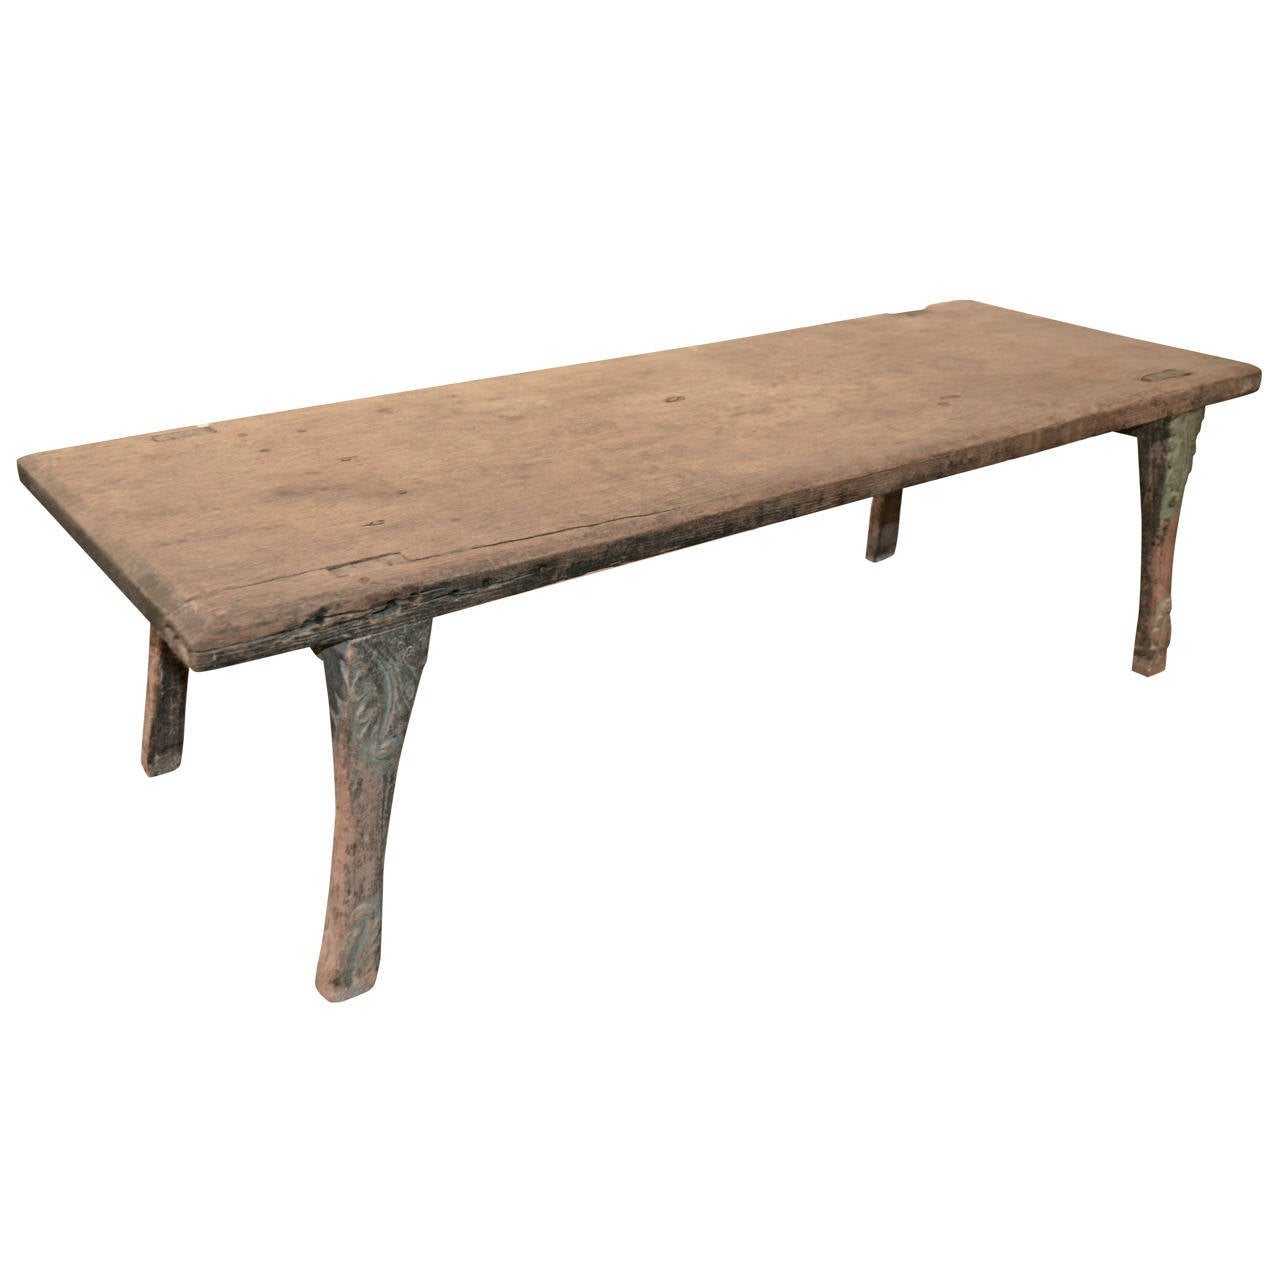 Vintage Wood Slab Coffee Table At 1stdibs: Antique Bench Or Coffee Table Made From A Single Teak Slab